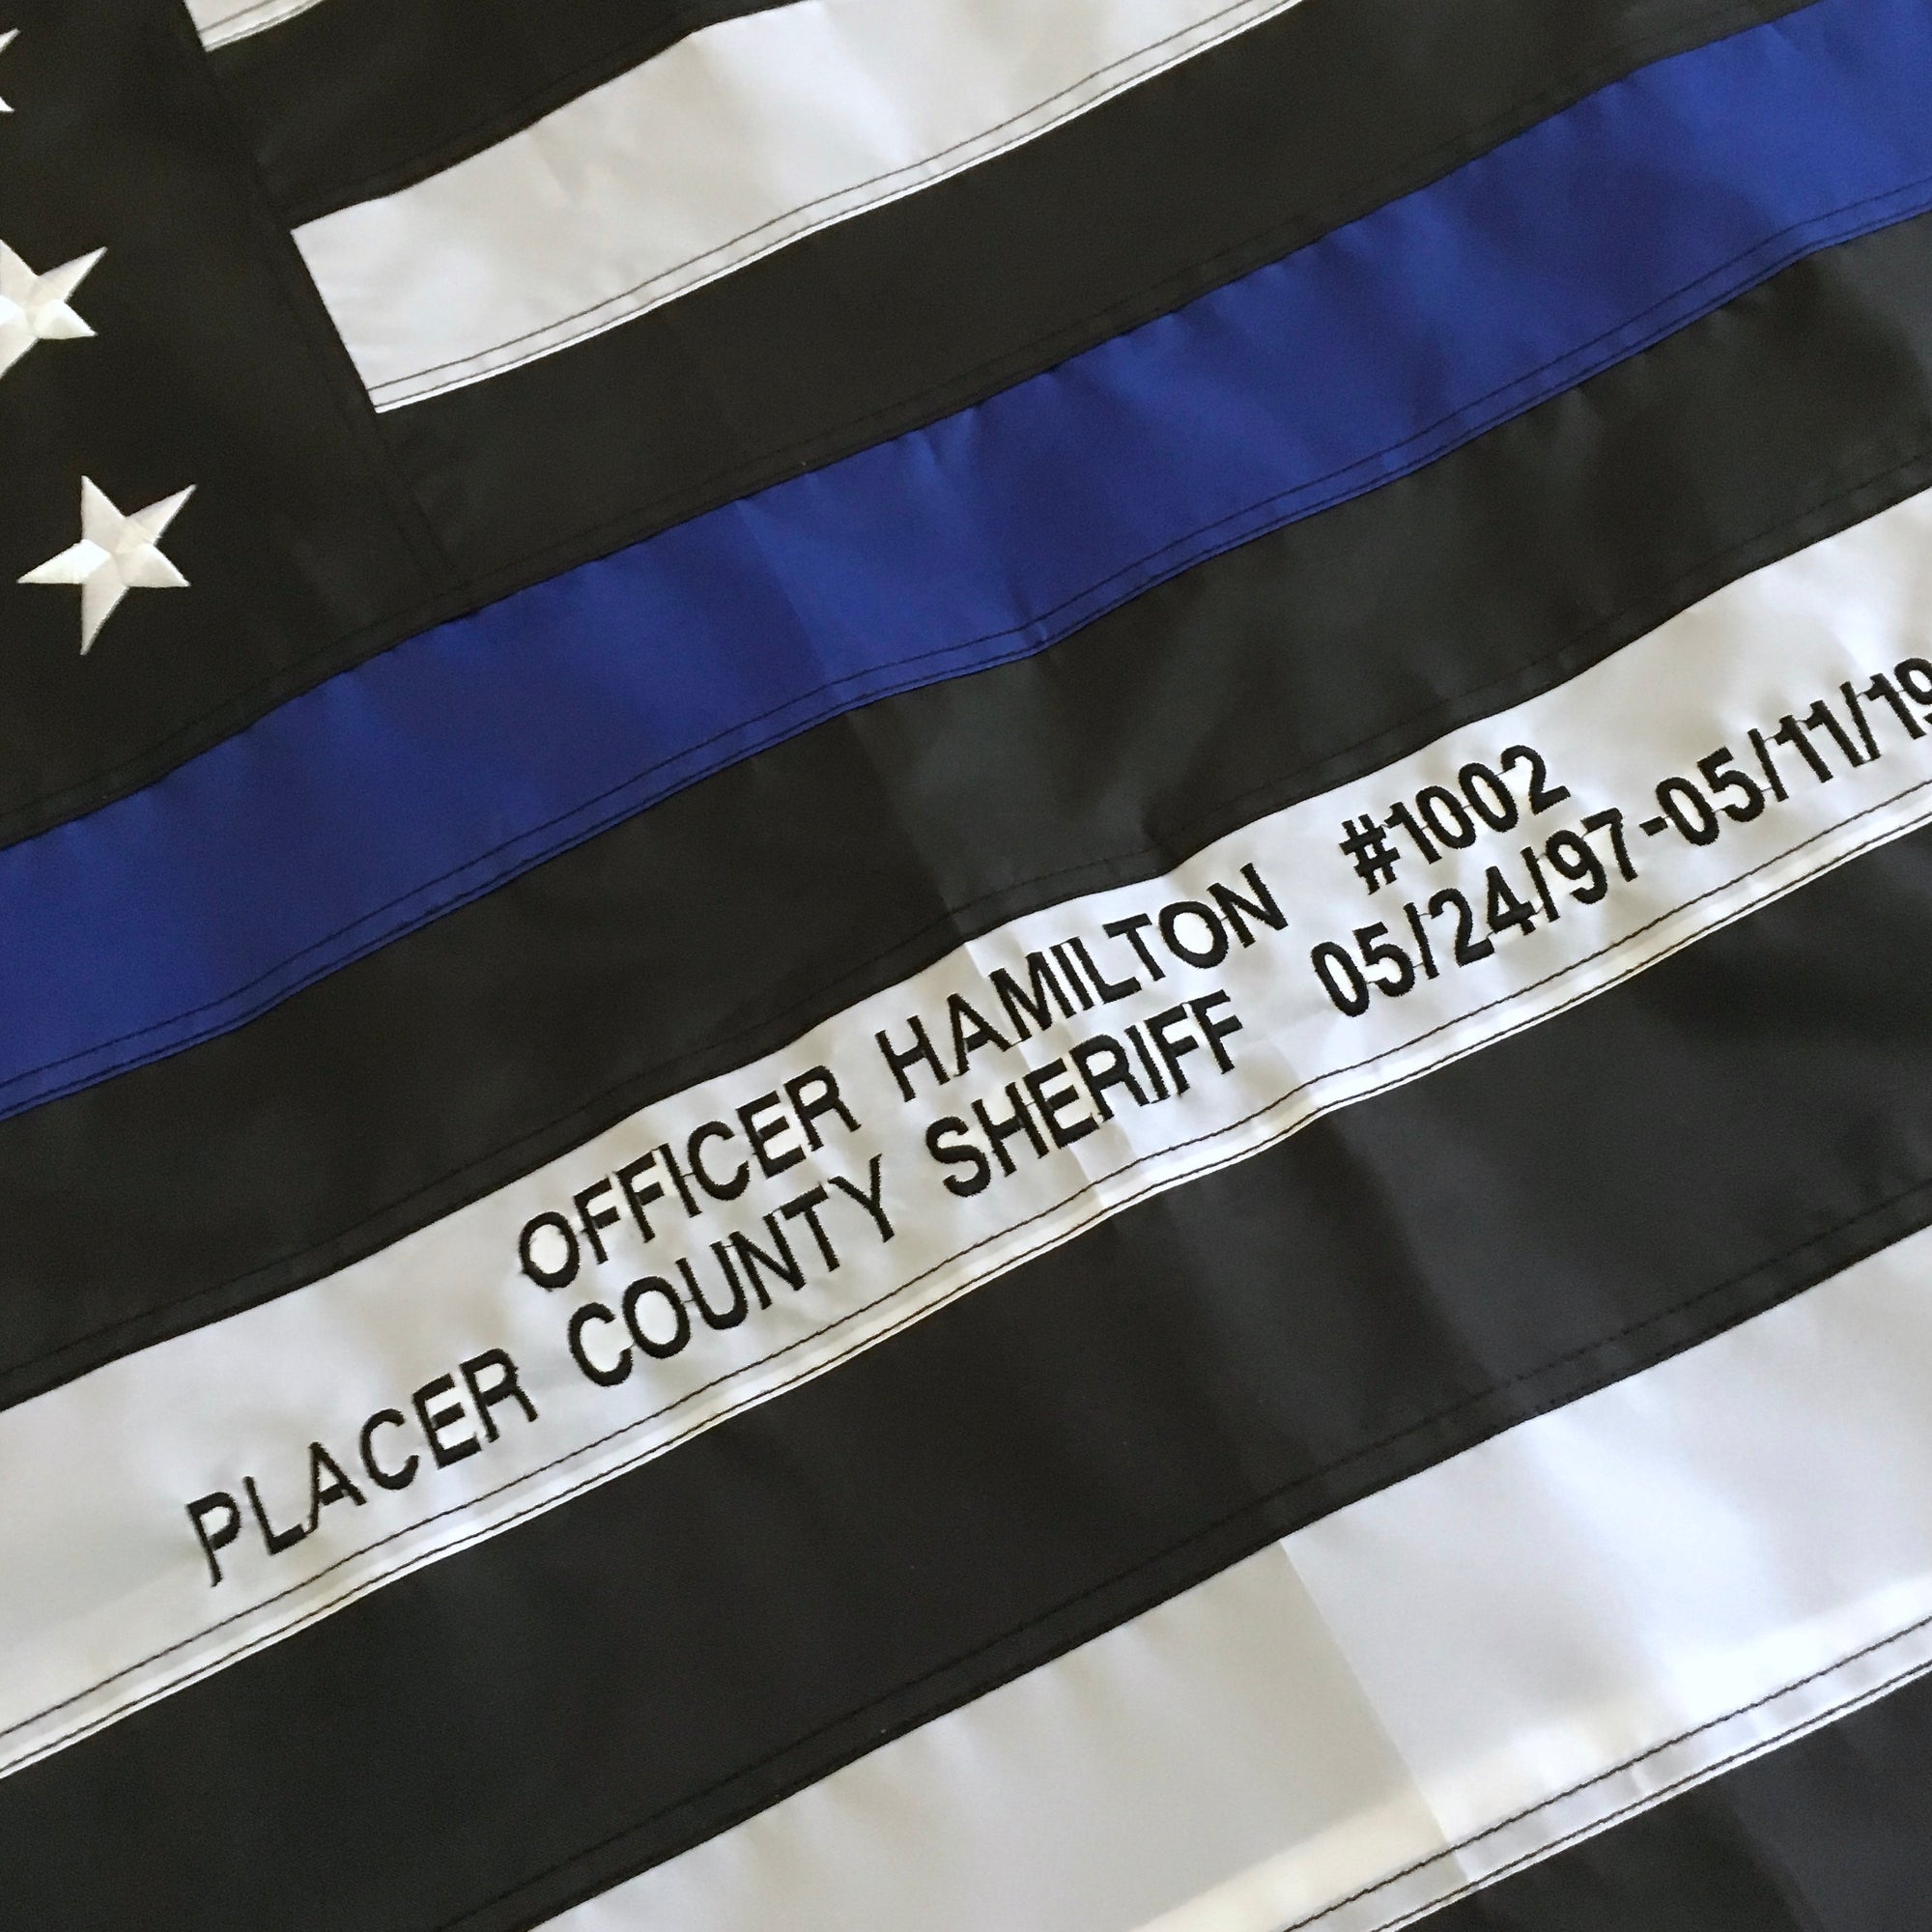 Custom Embroidery on Thin Blue Line Flag